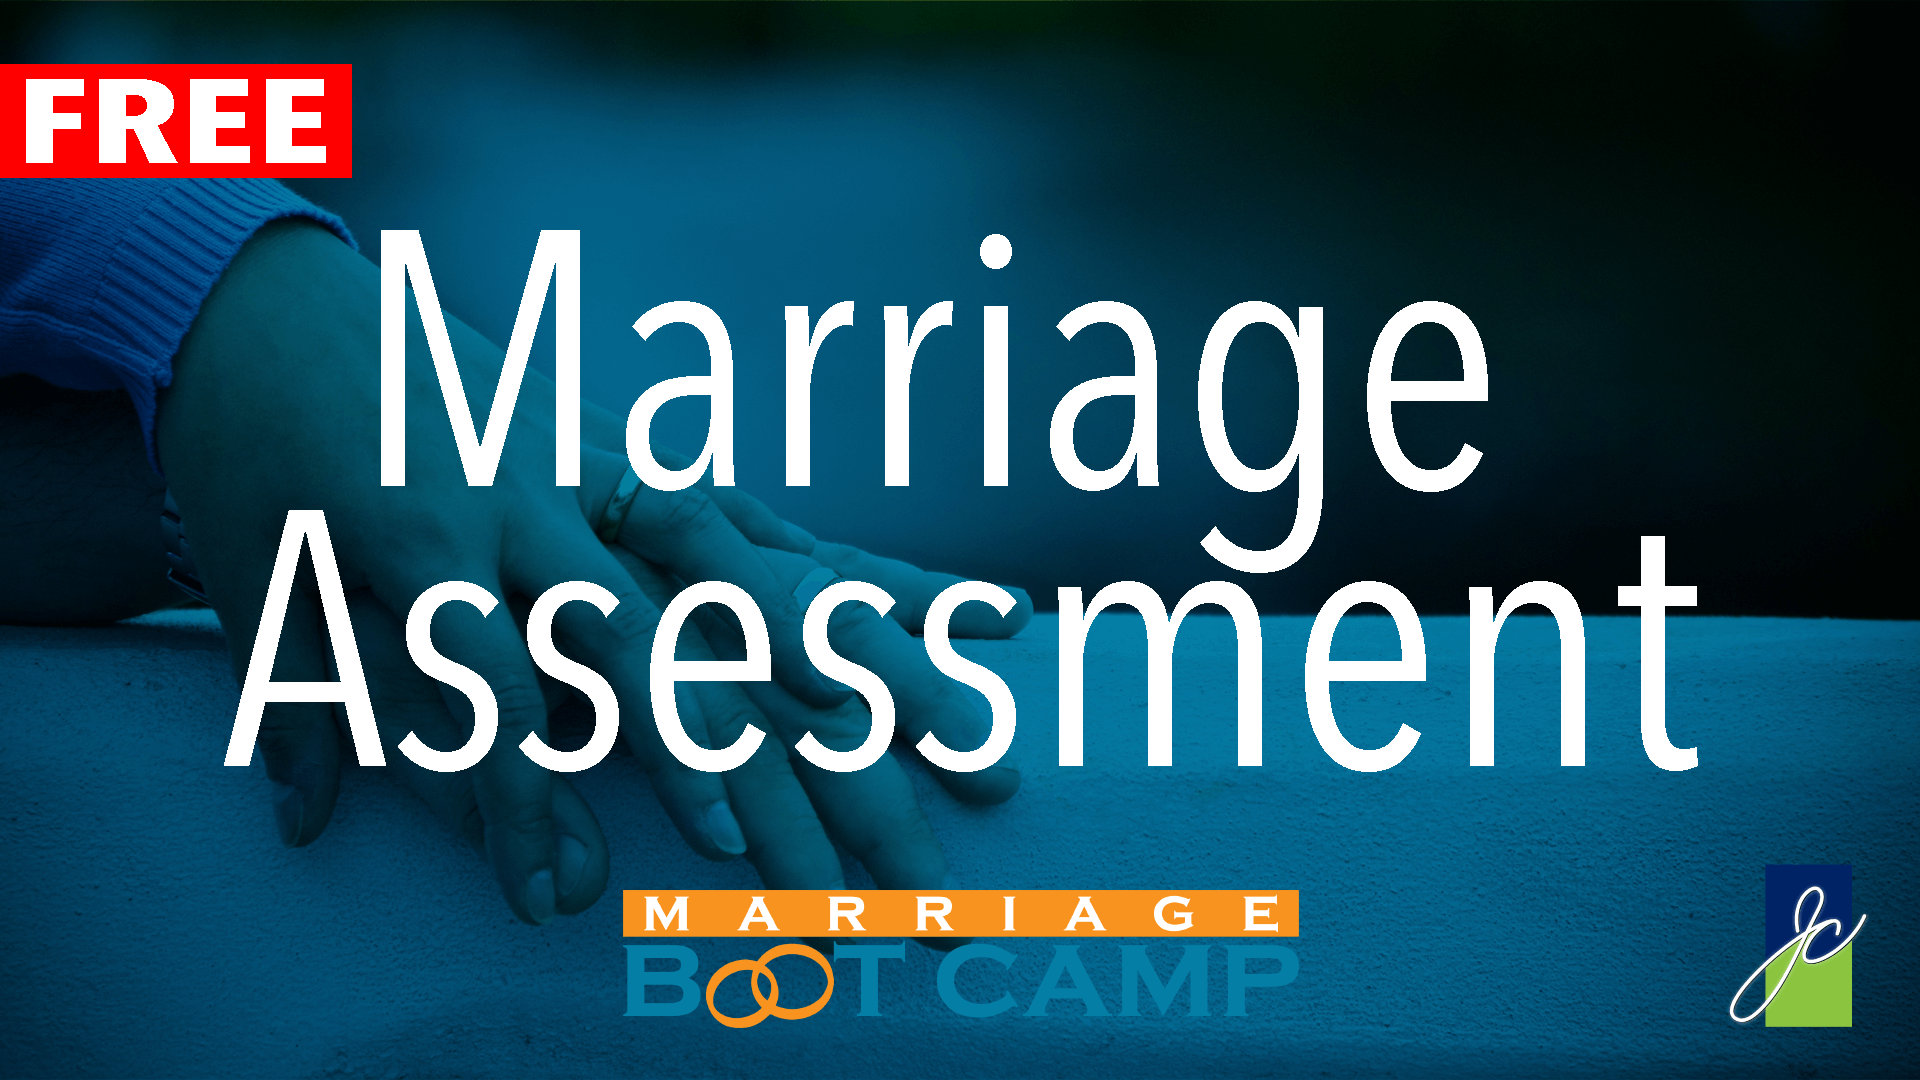 Exceptional Things You Can Do To Have an Exceptional Marriage